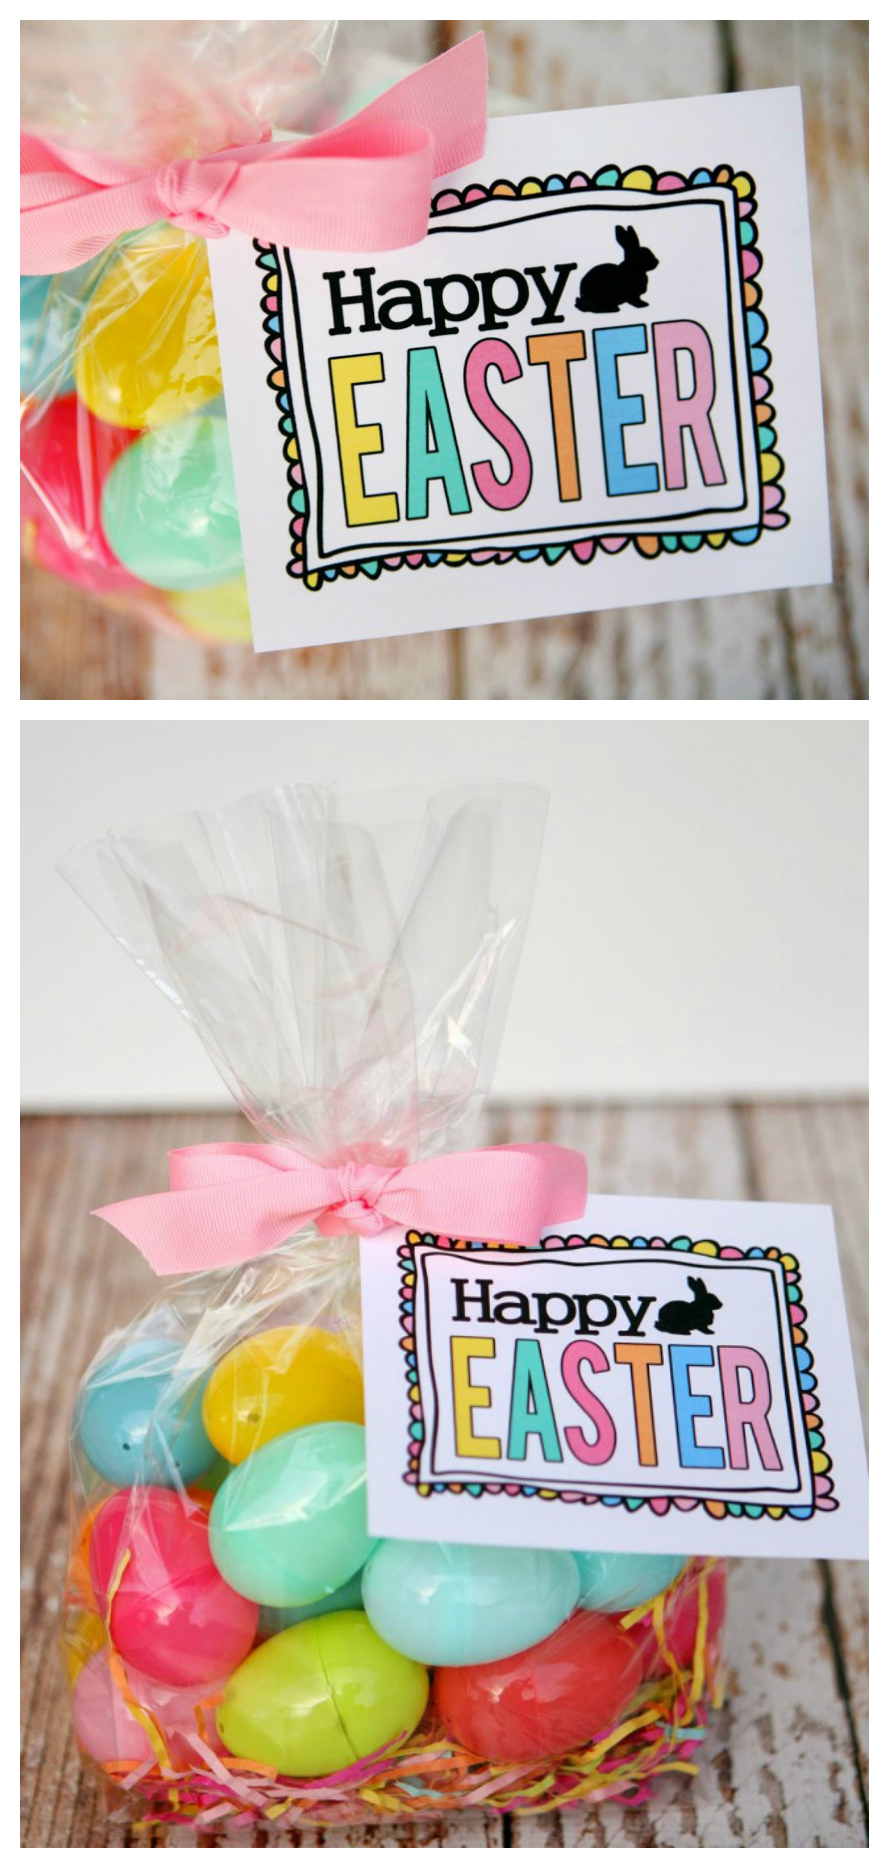 Free Printable Happy Easter Tags | Easter Gift Ideas